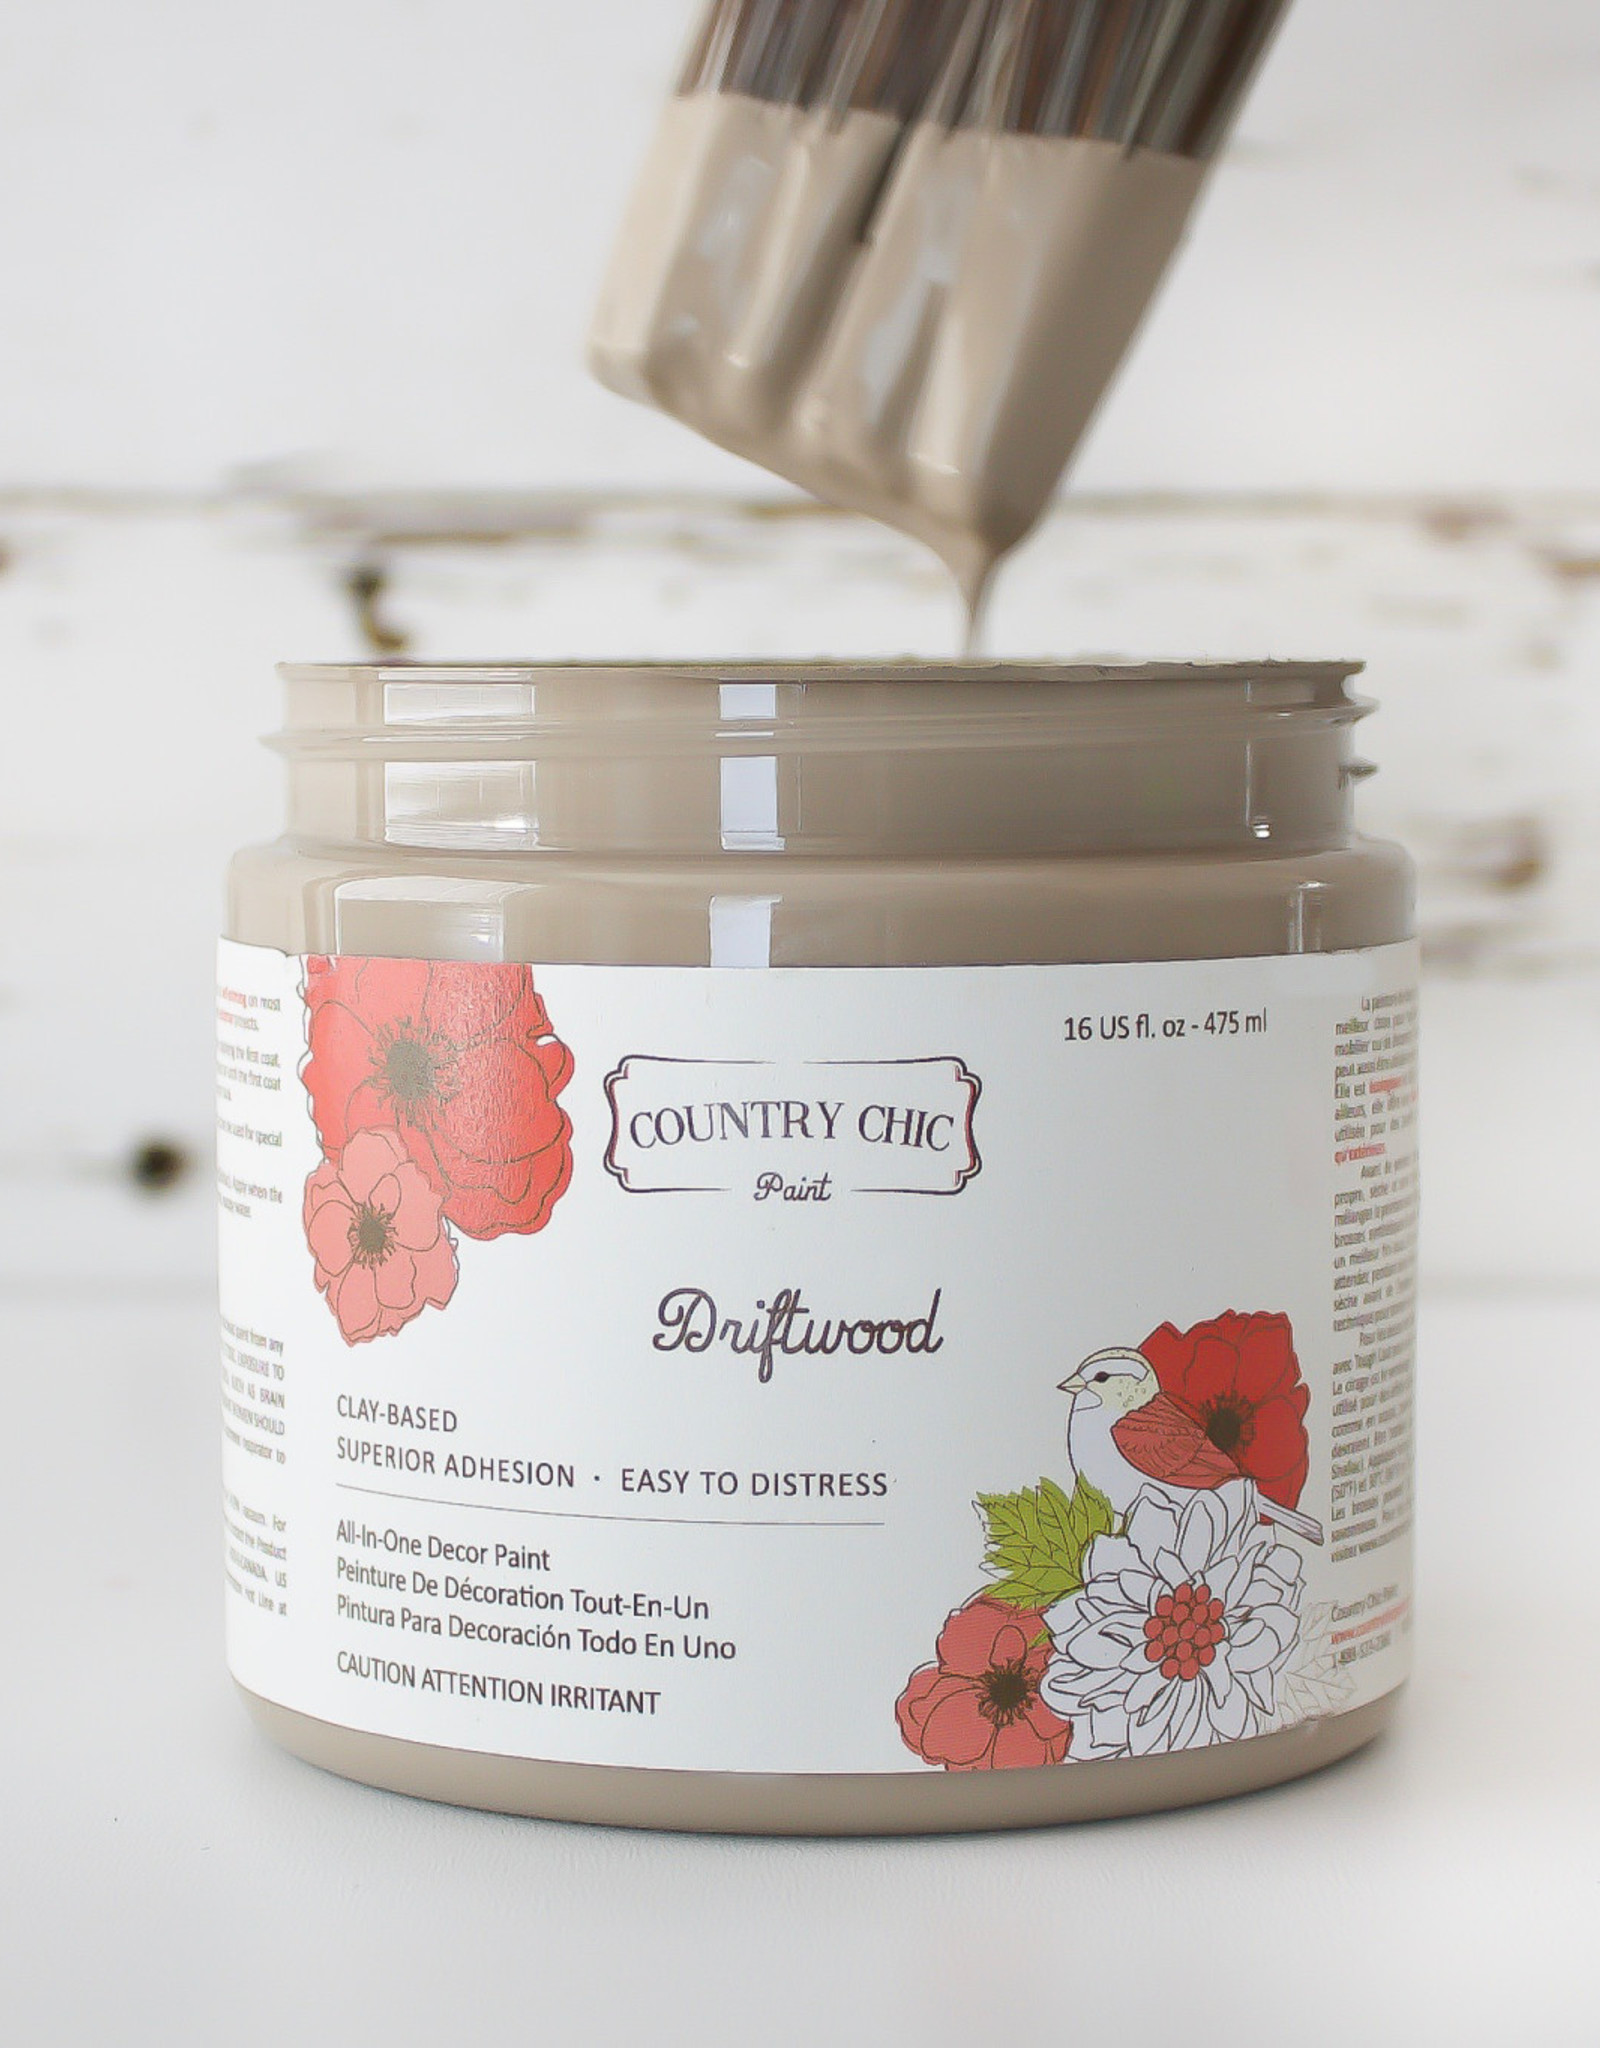 Country Chic Country Chic Paint Sample - 4oz Driftwood